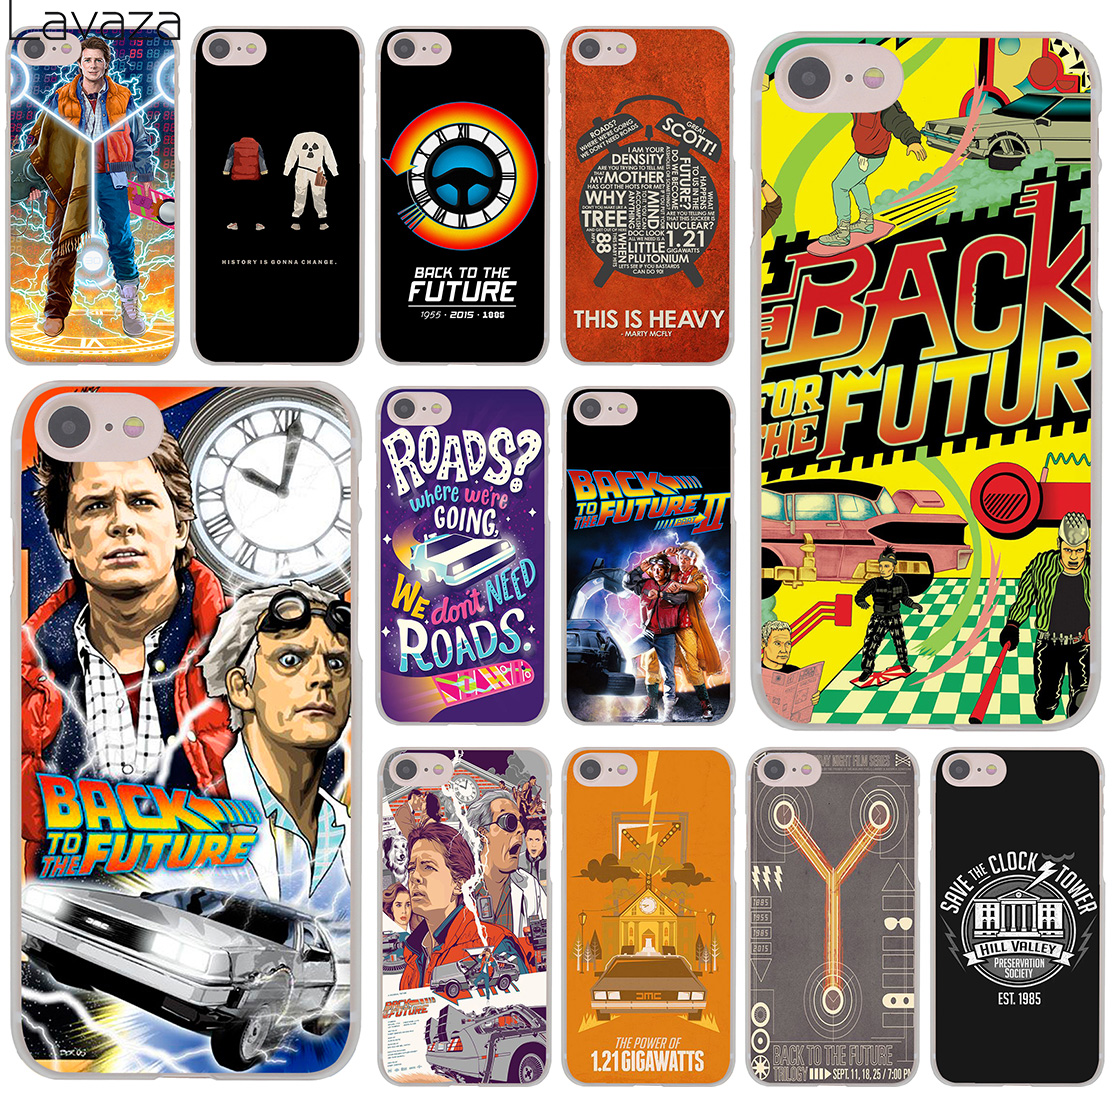 Lavaza Back To The Future Hard Cover Case for Apple iPhone 8 7 6 6S Plus 5 5S SE 5C 4 4S X 10 Coque Shell